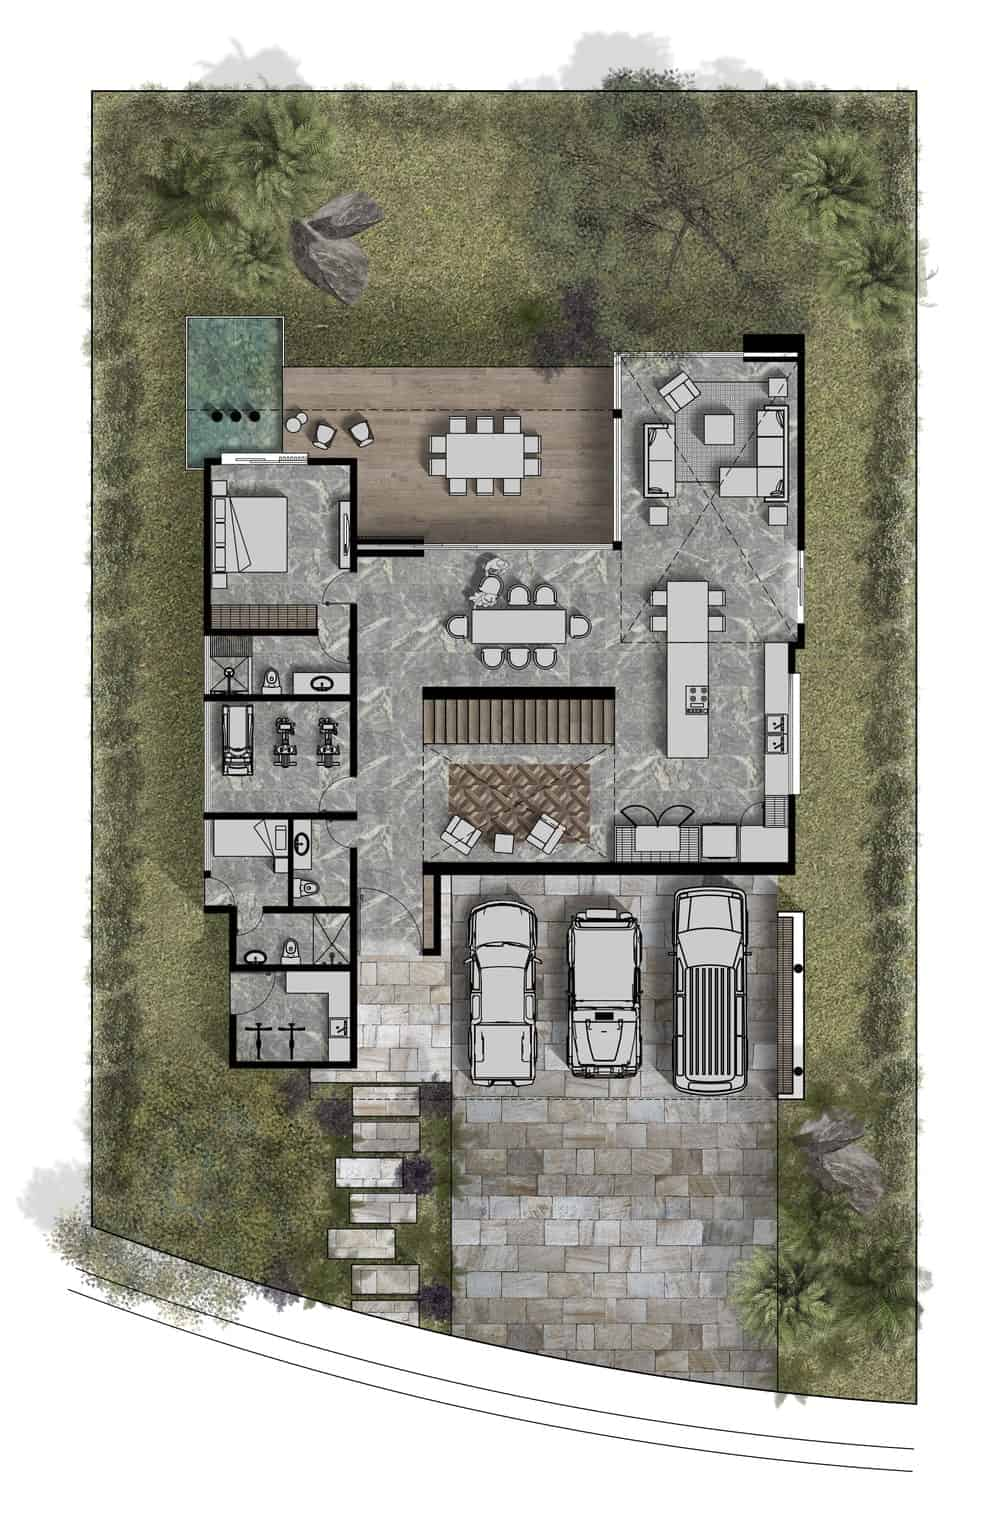 This is an illustration of the first level floor plan of the house featuring the different sections.